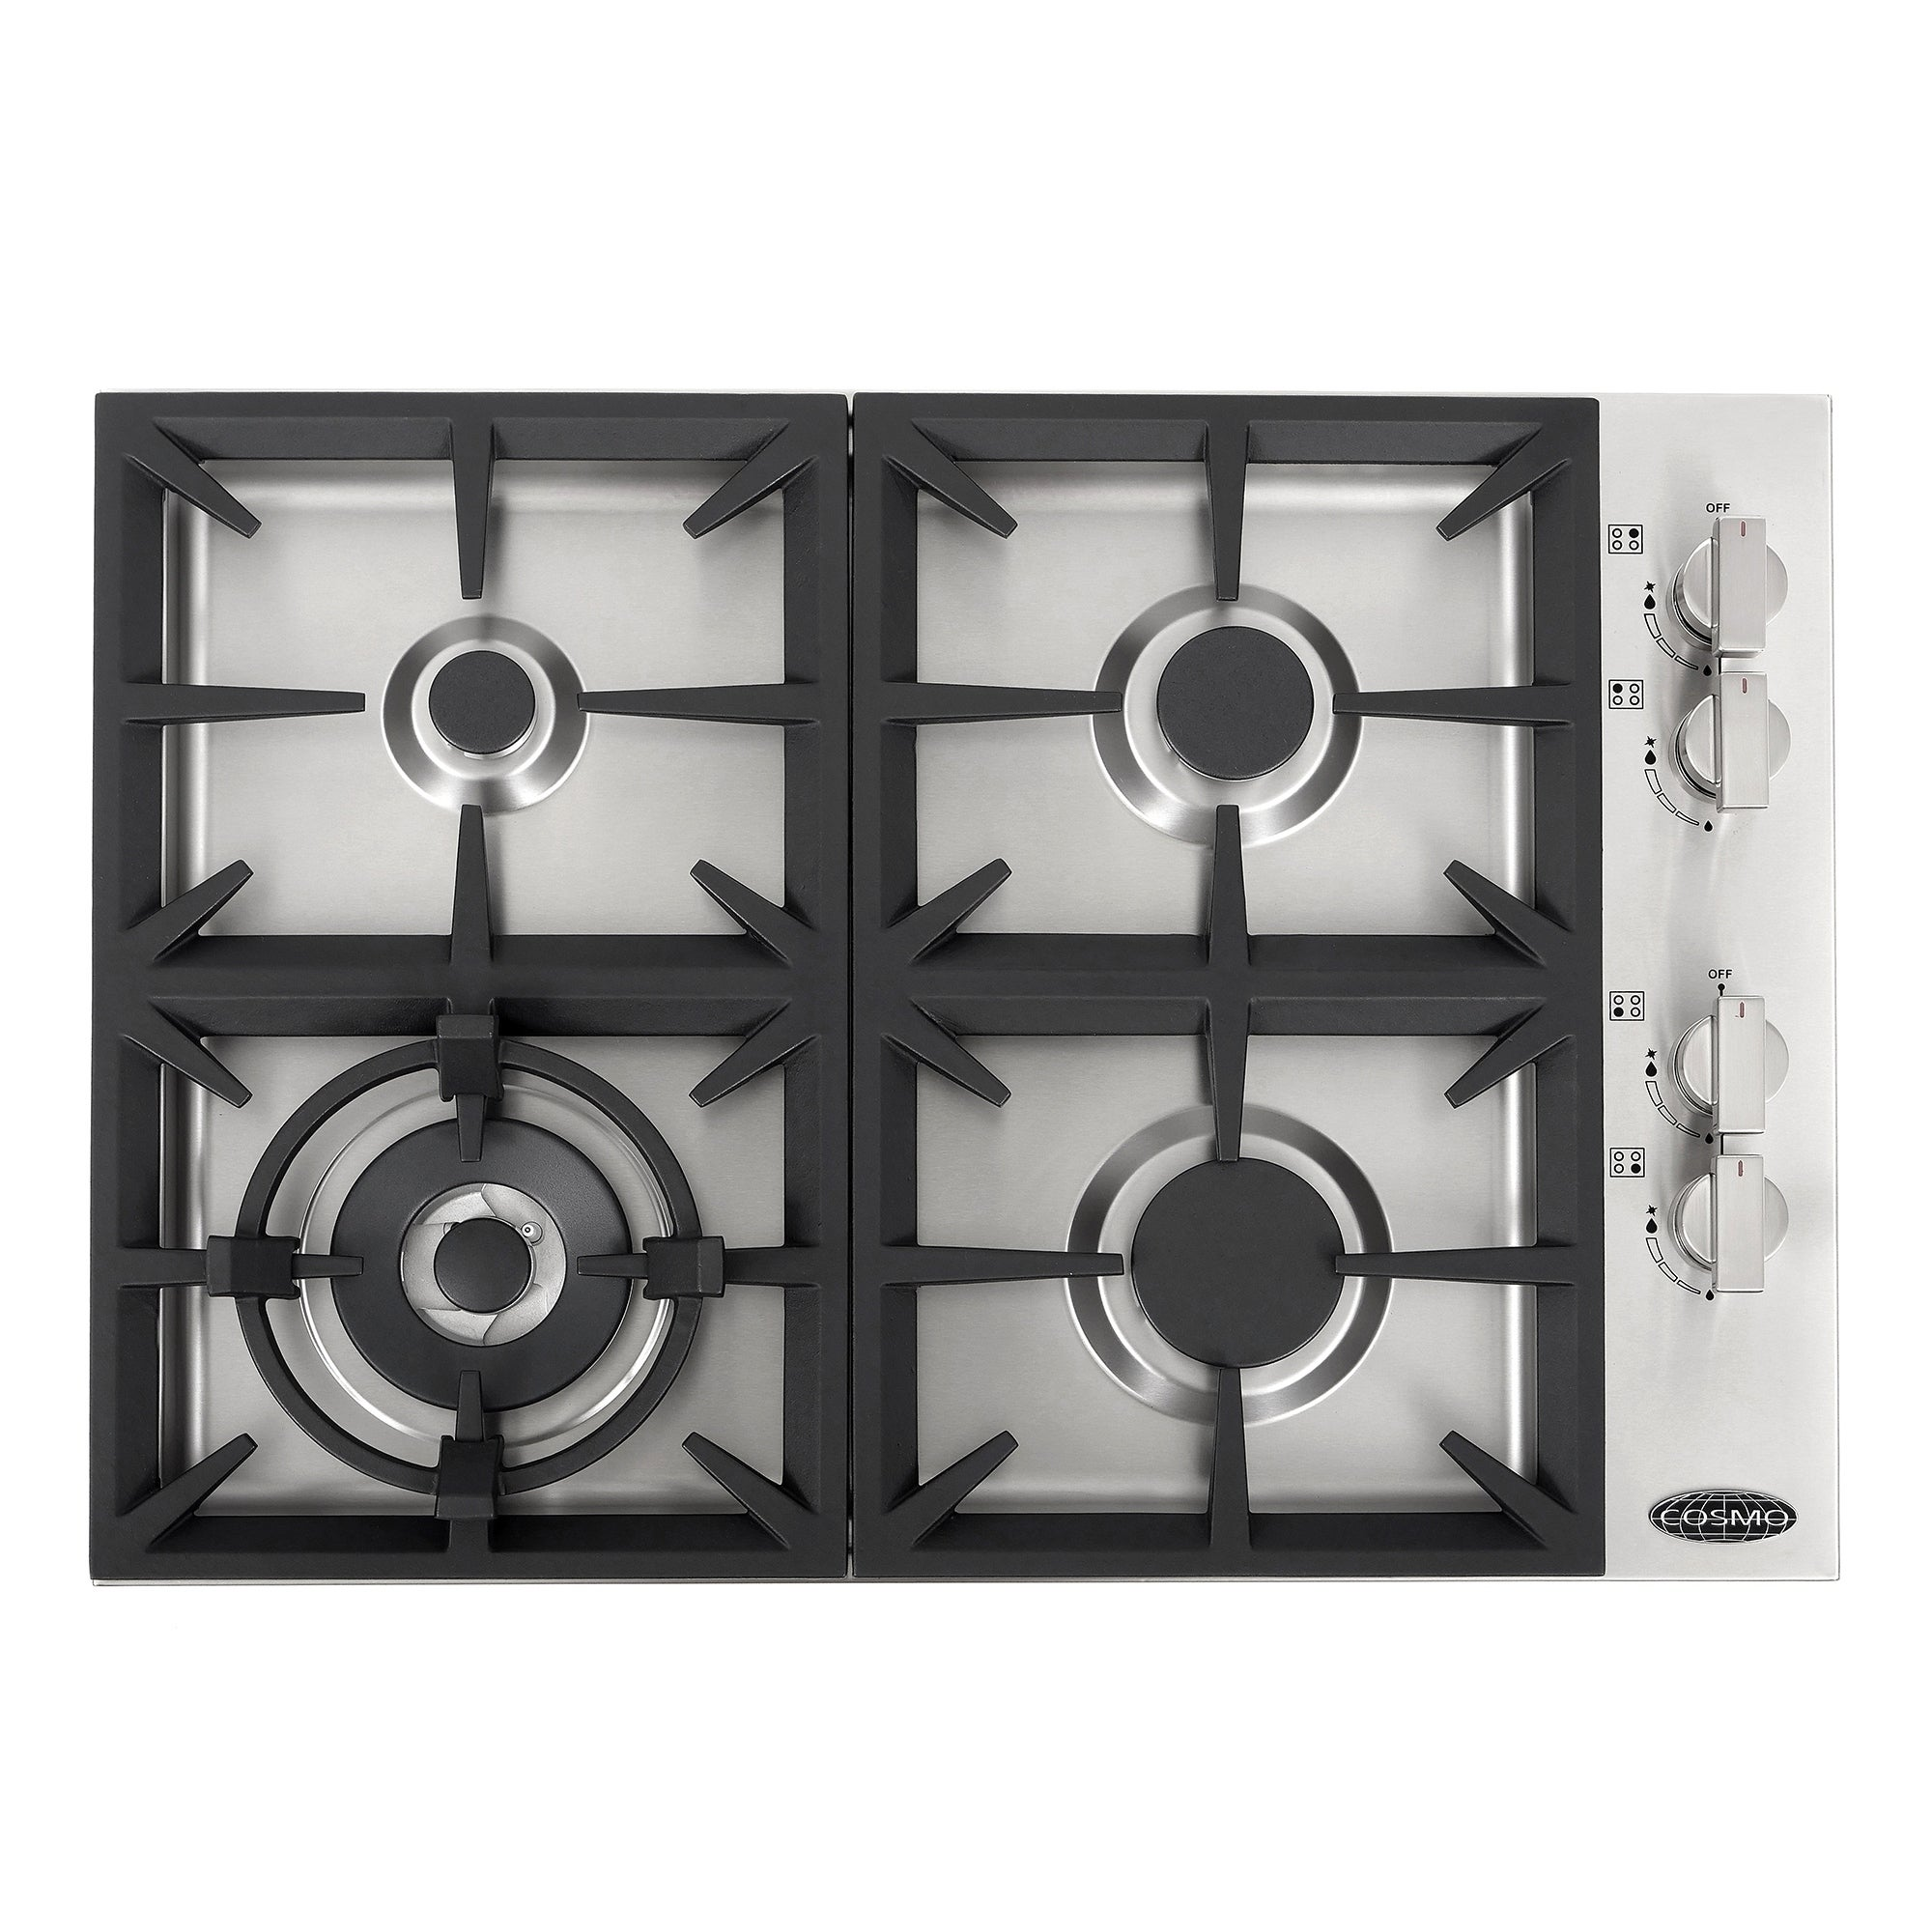 30 In Gas Cooktop Stainless Steel With 4 Italian Made Burners Inches